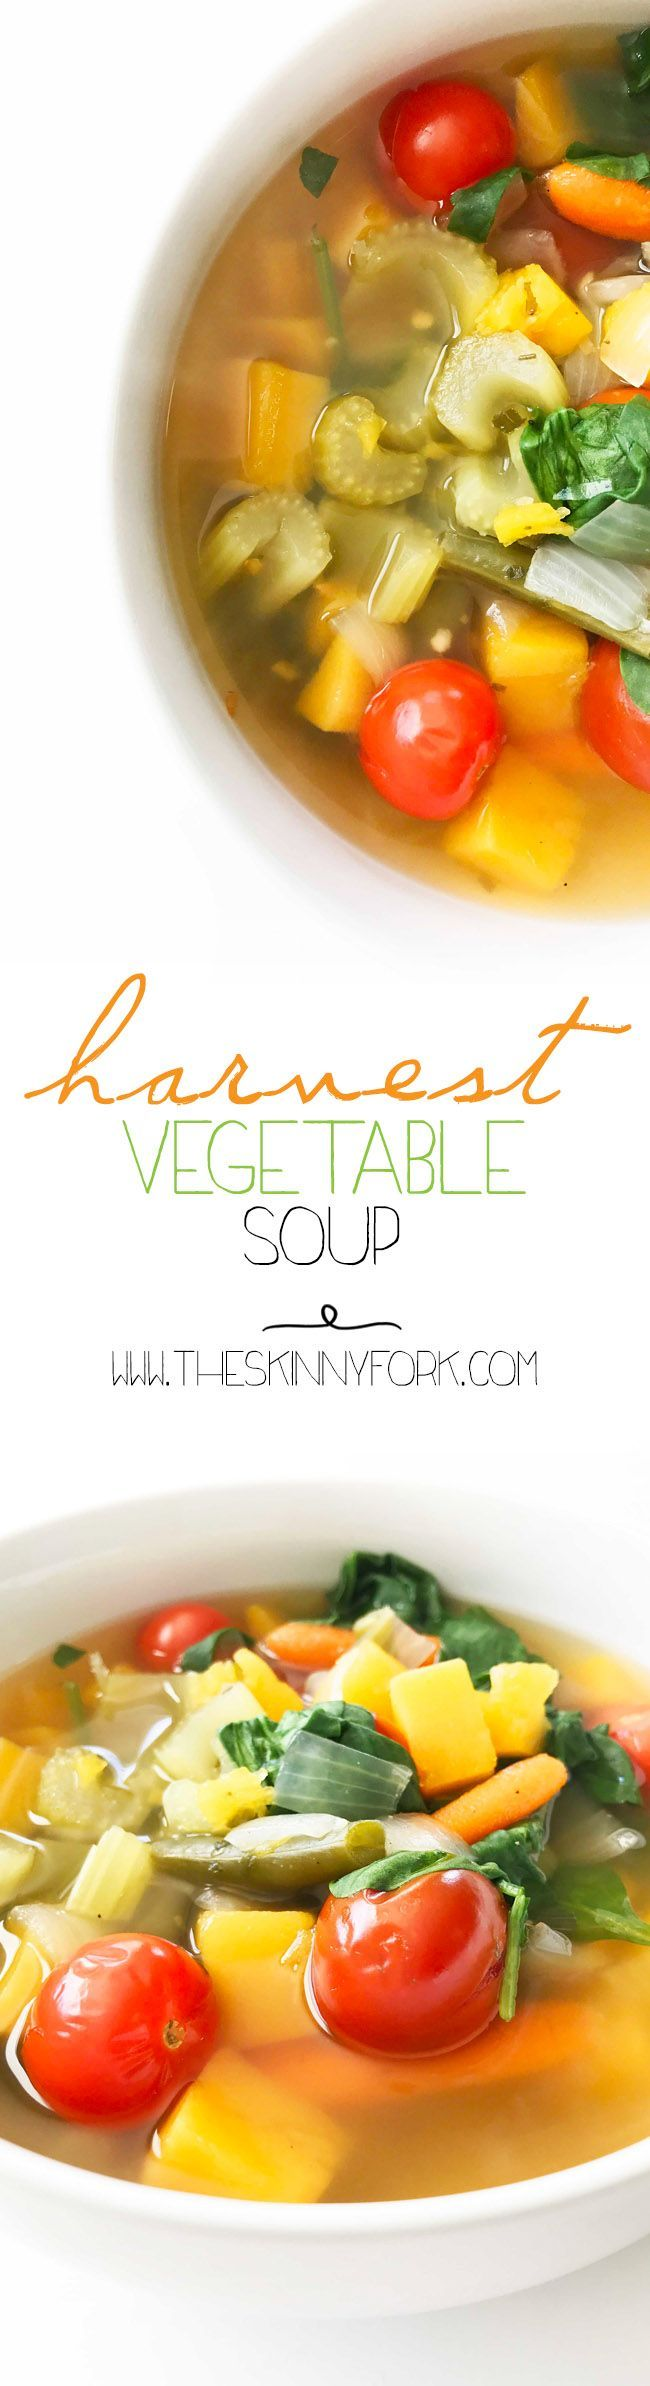 M S De 25 Ideas Incre Bles Sobre Skinny Vegetable Soup En